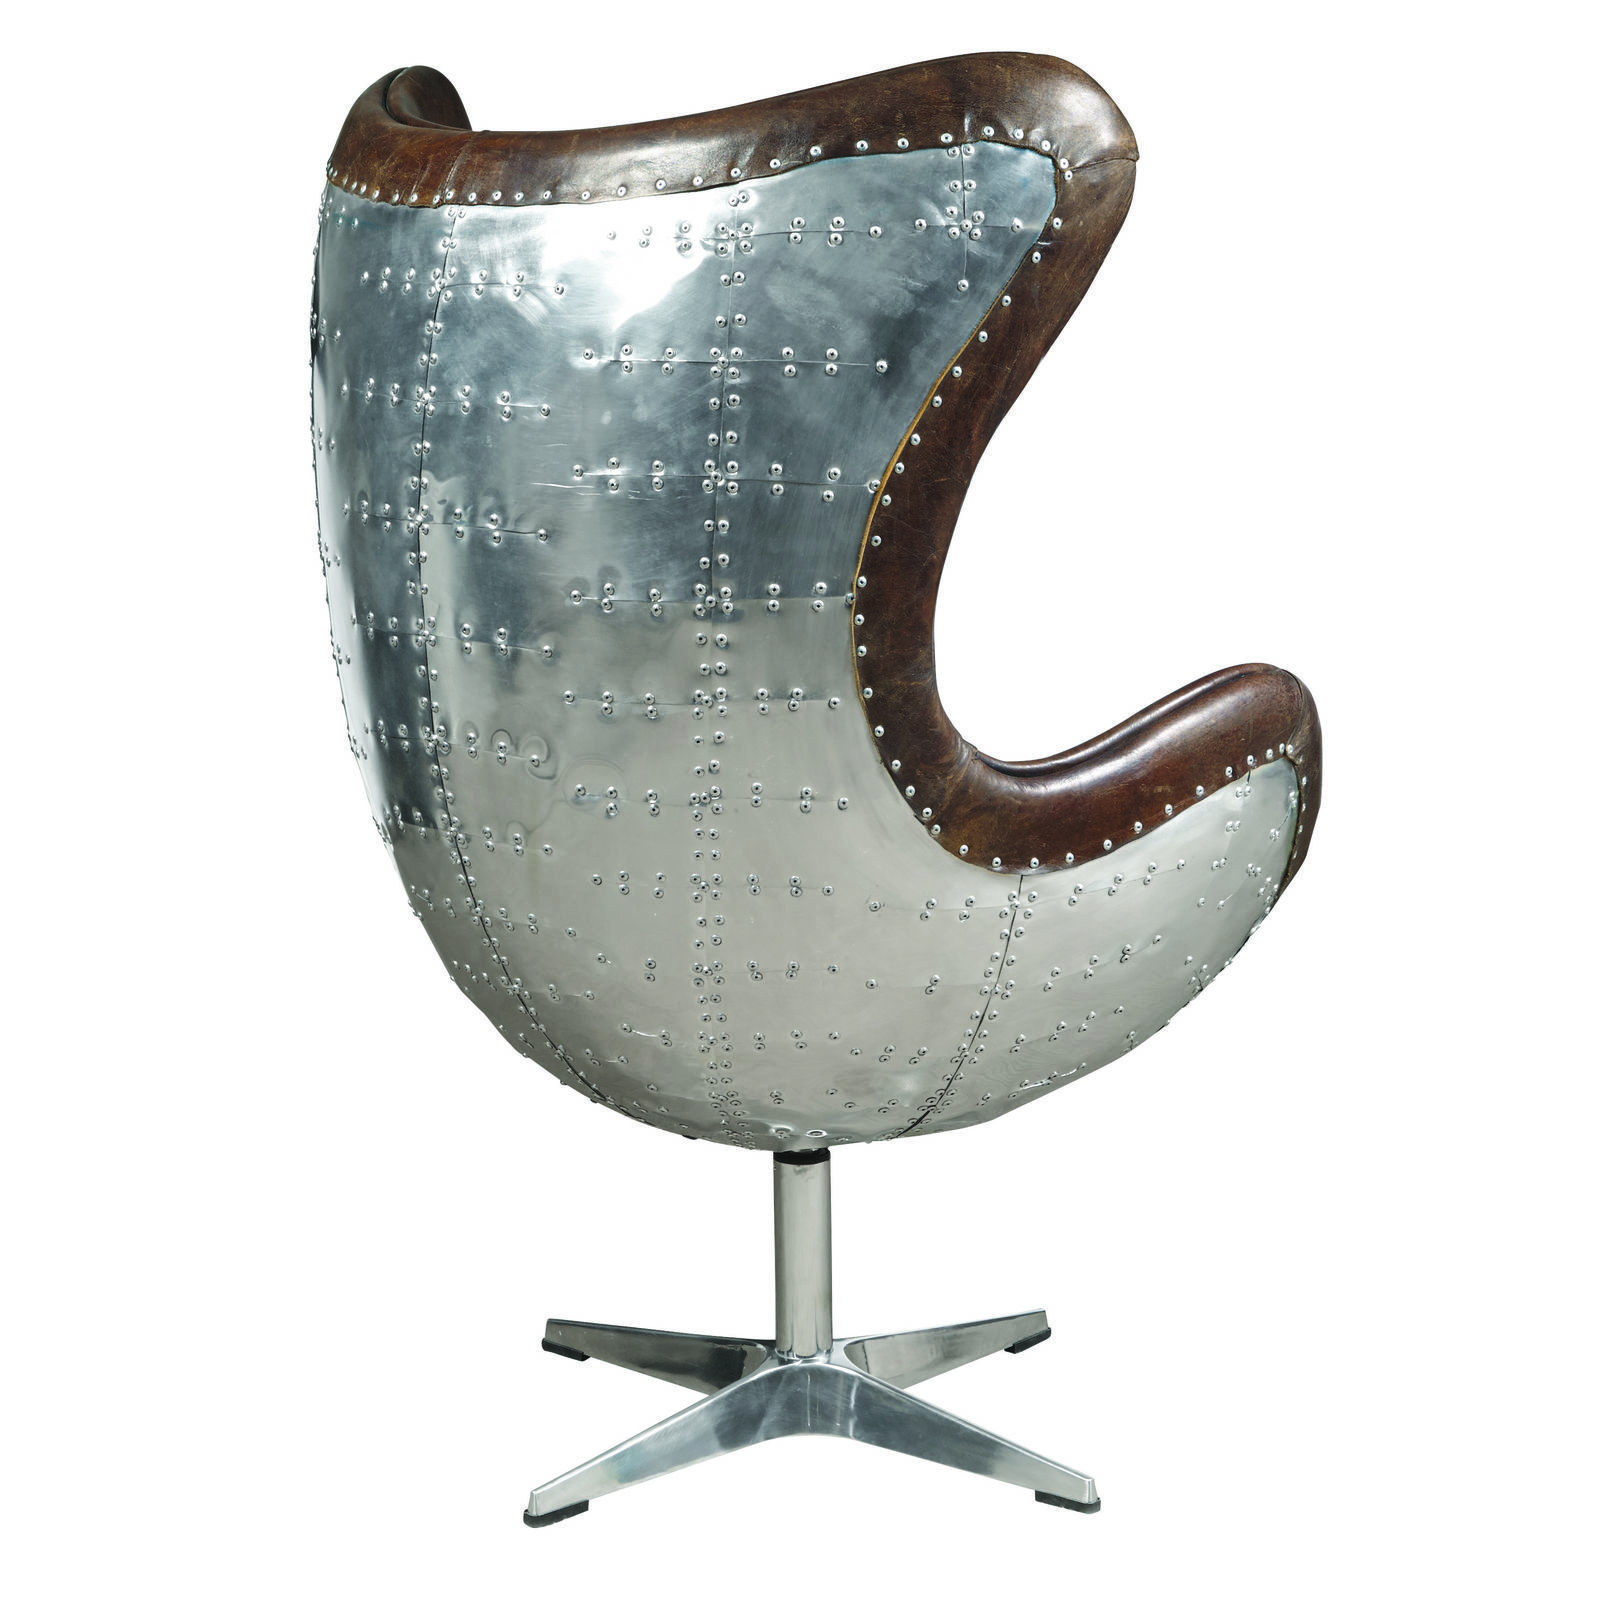 Brown Leather Egg Chair Fabulous Modern Cuba Brown Leather Swivel Egg Chair 32 39 39 X